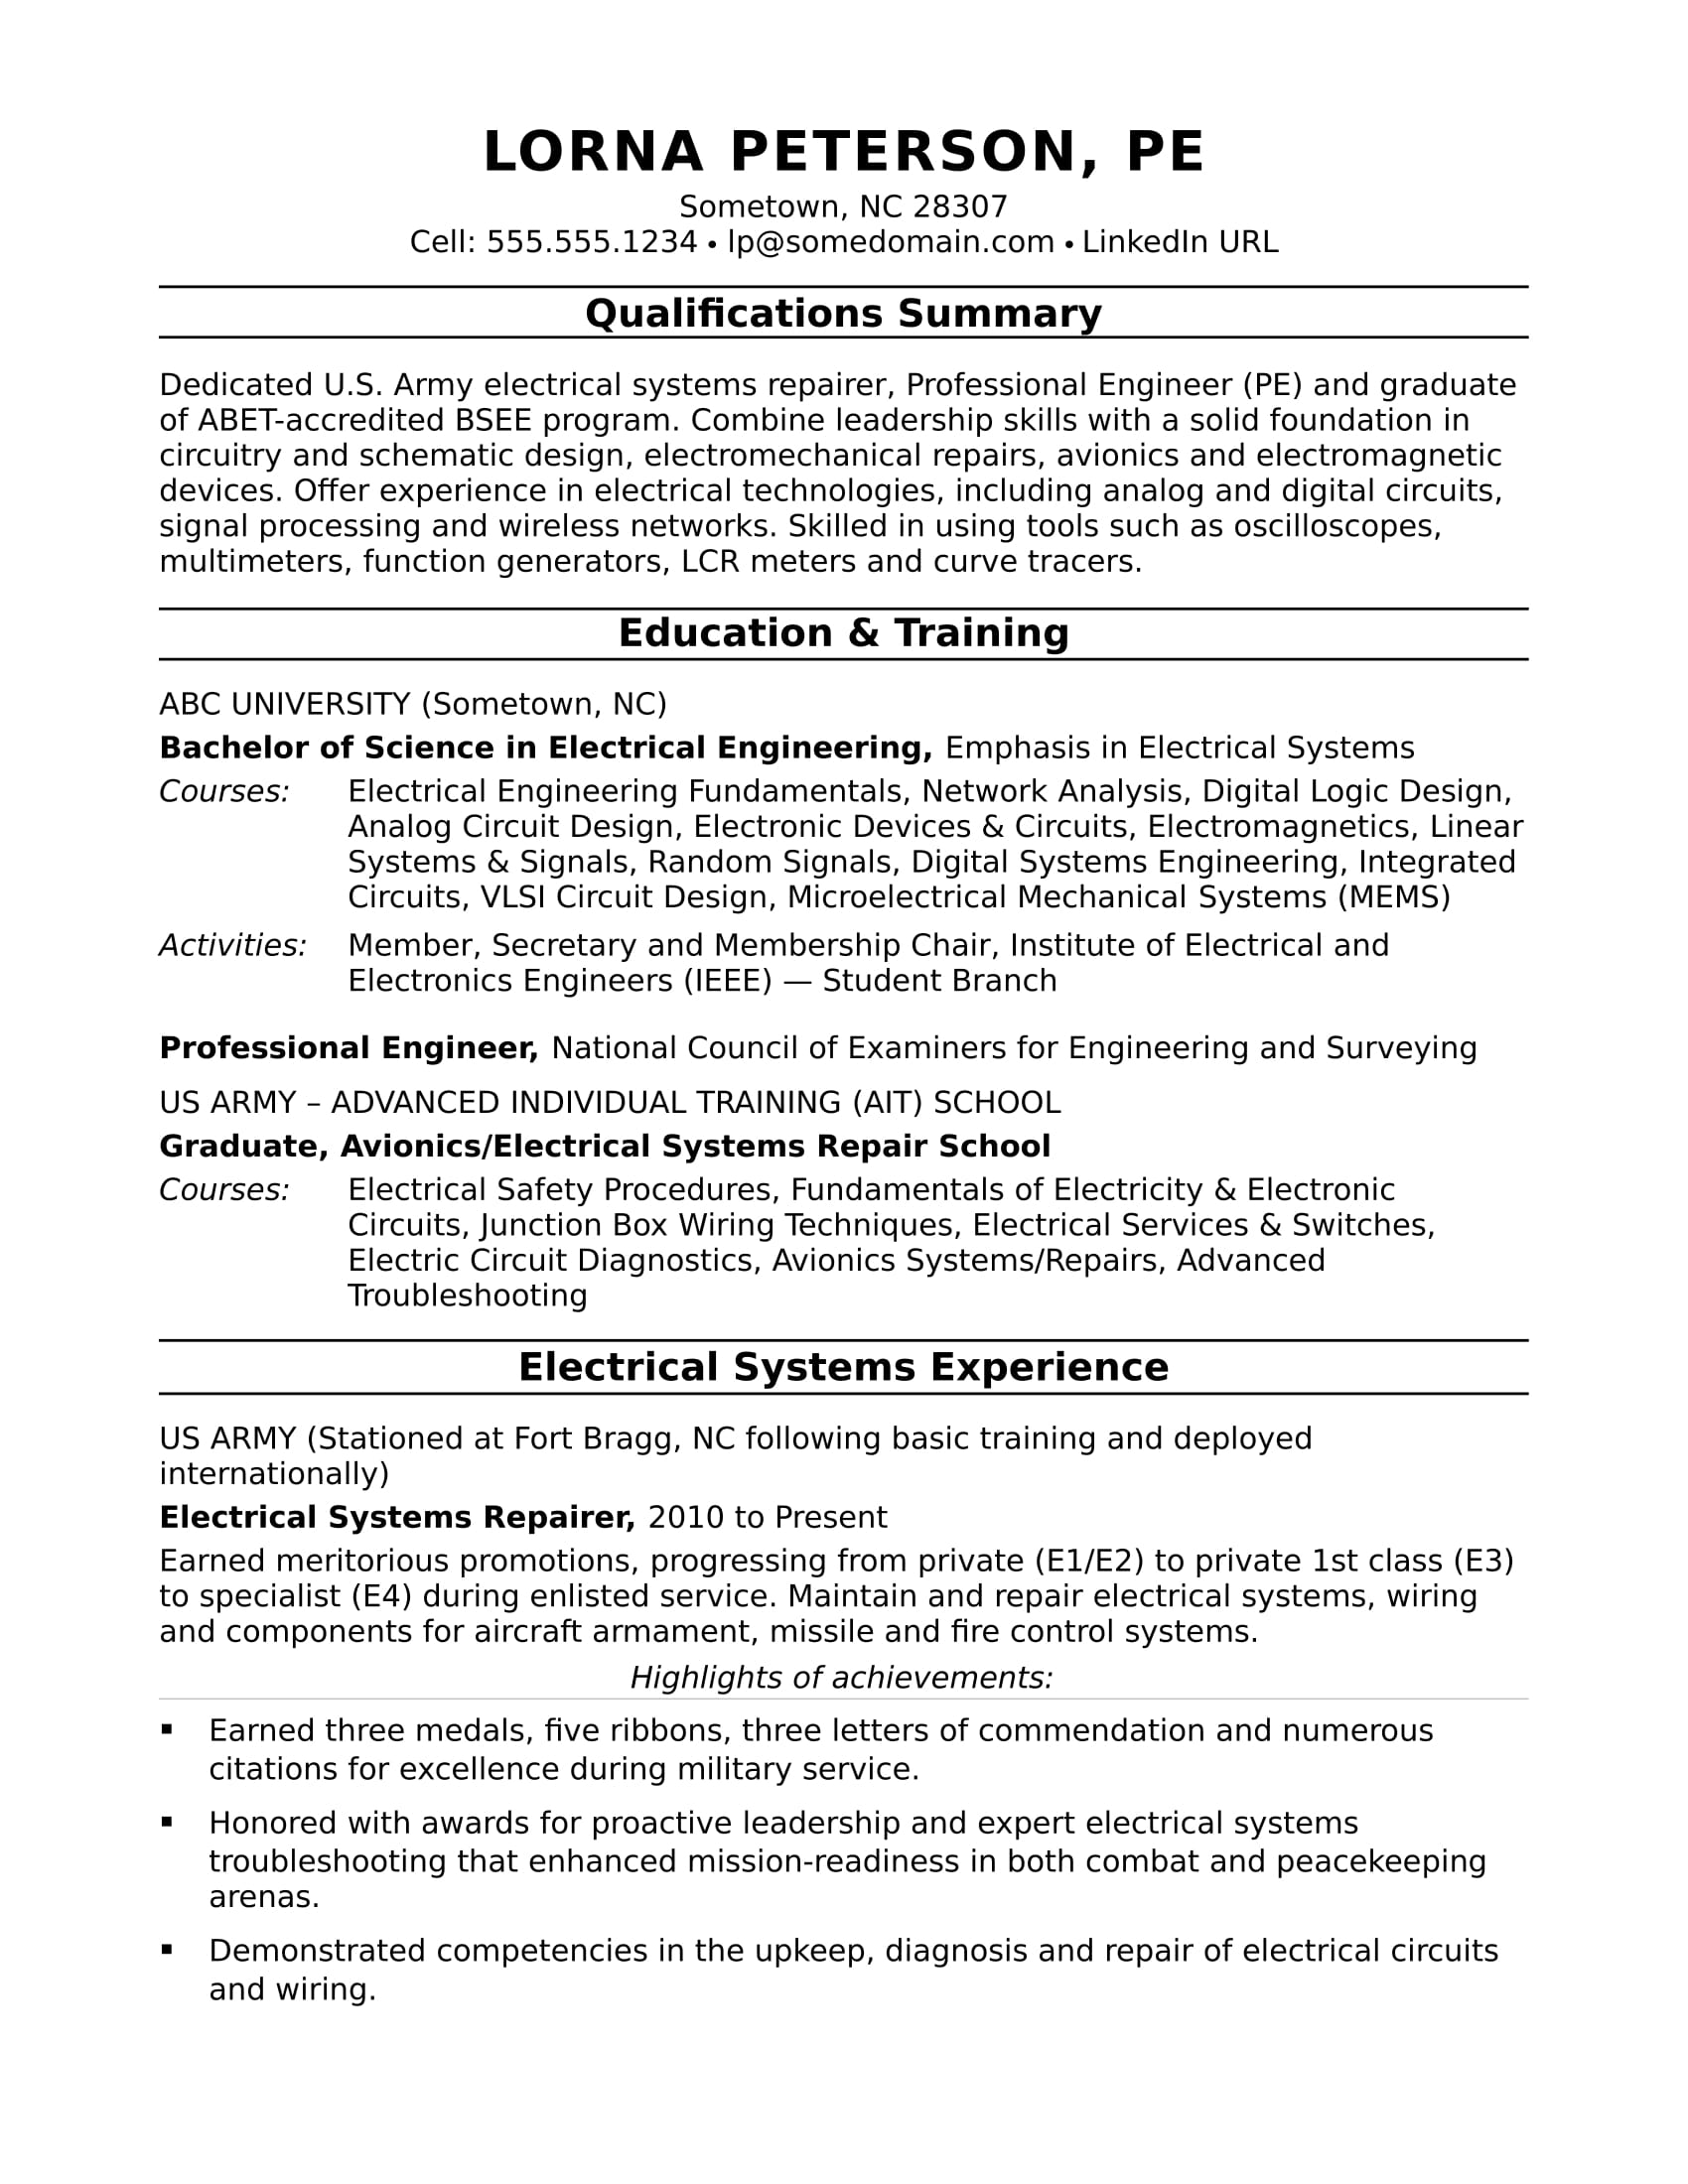 Sample Resume For A Midlevel Electrical Engineer  Professional Engineer Resume